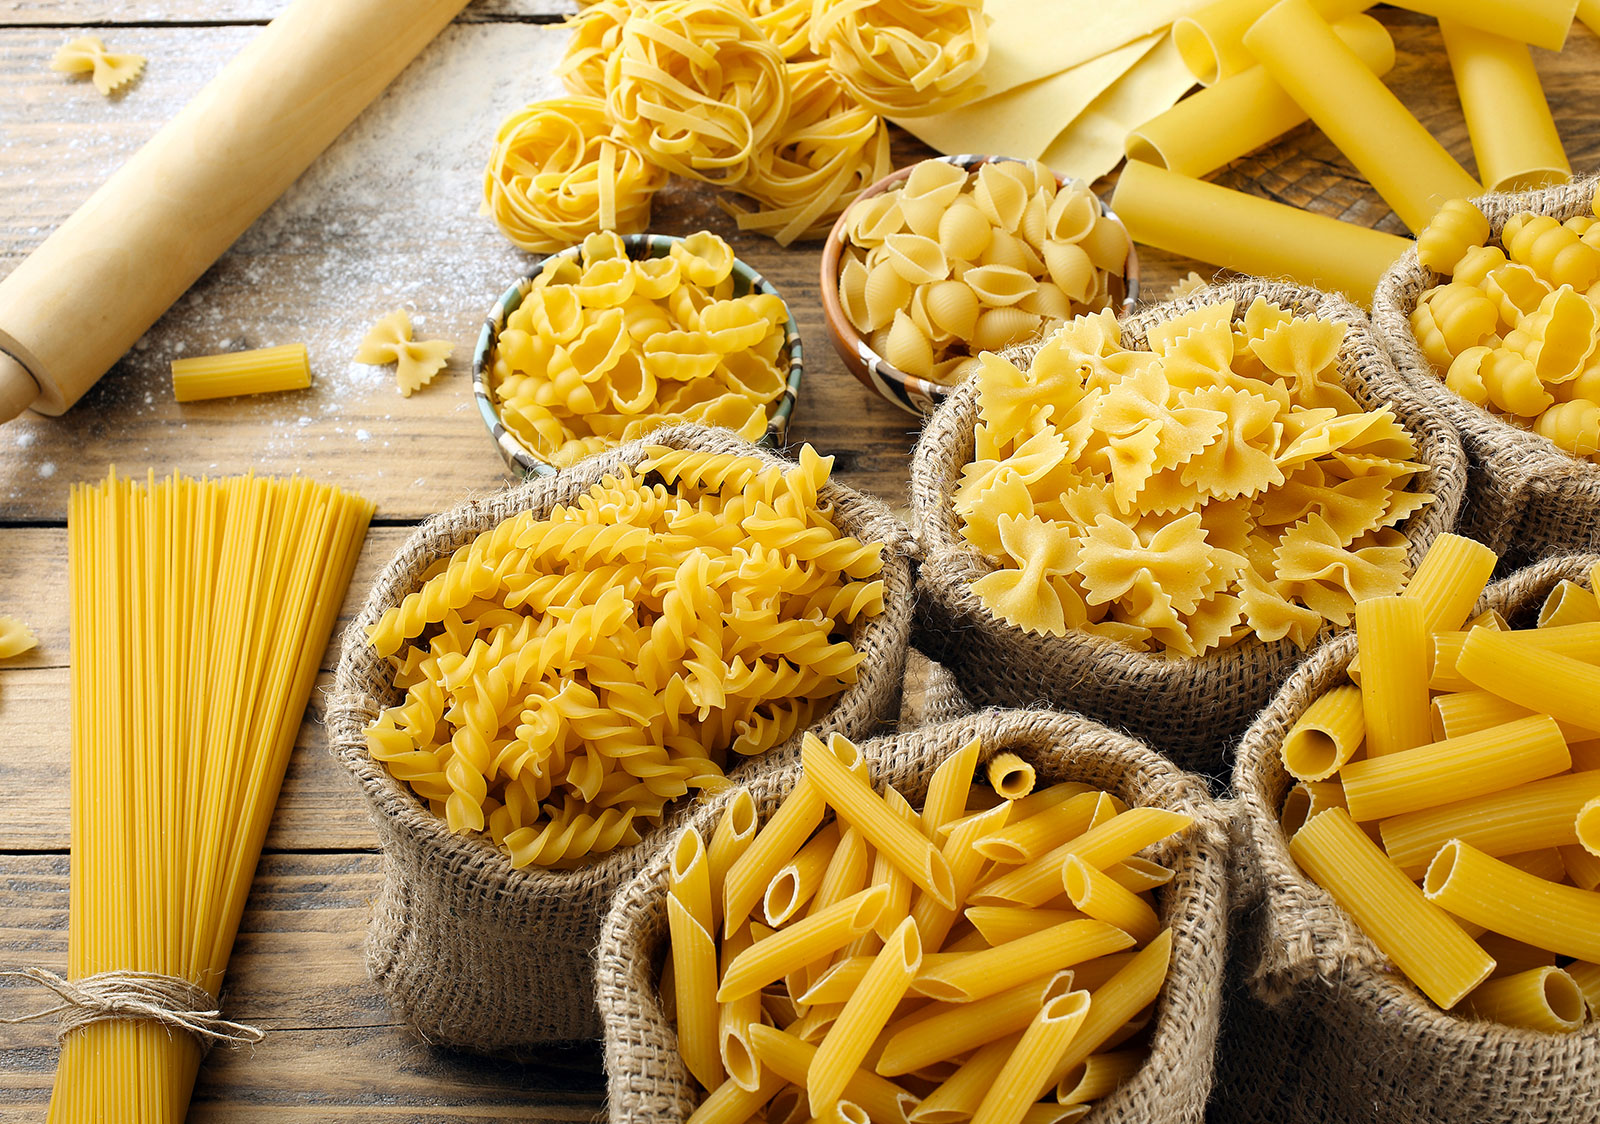 PASTALINE AUTOMATIC PASTA COOKING AND CHILLING LINES Nilma